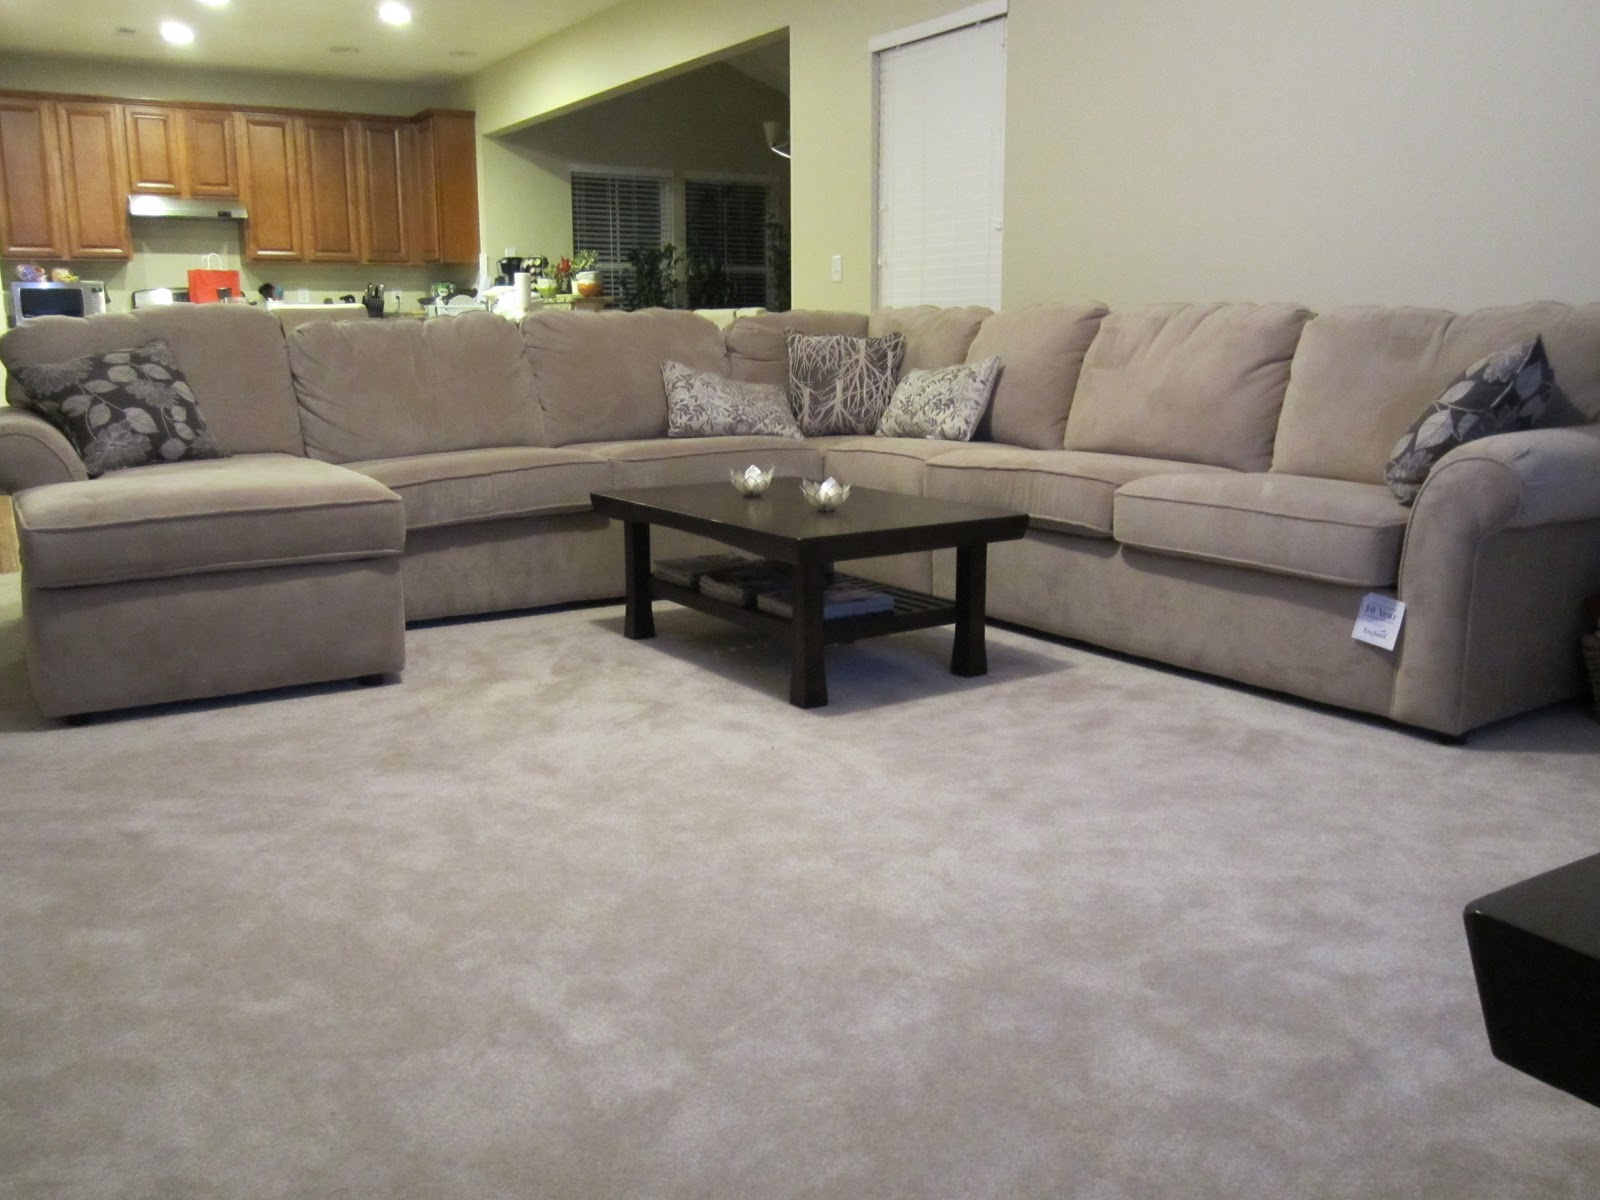 Deep Seated Sectional | Sectional Sofa with Chaise | Costco Leather Sectional